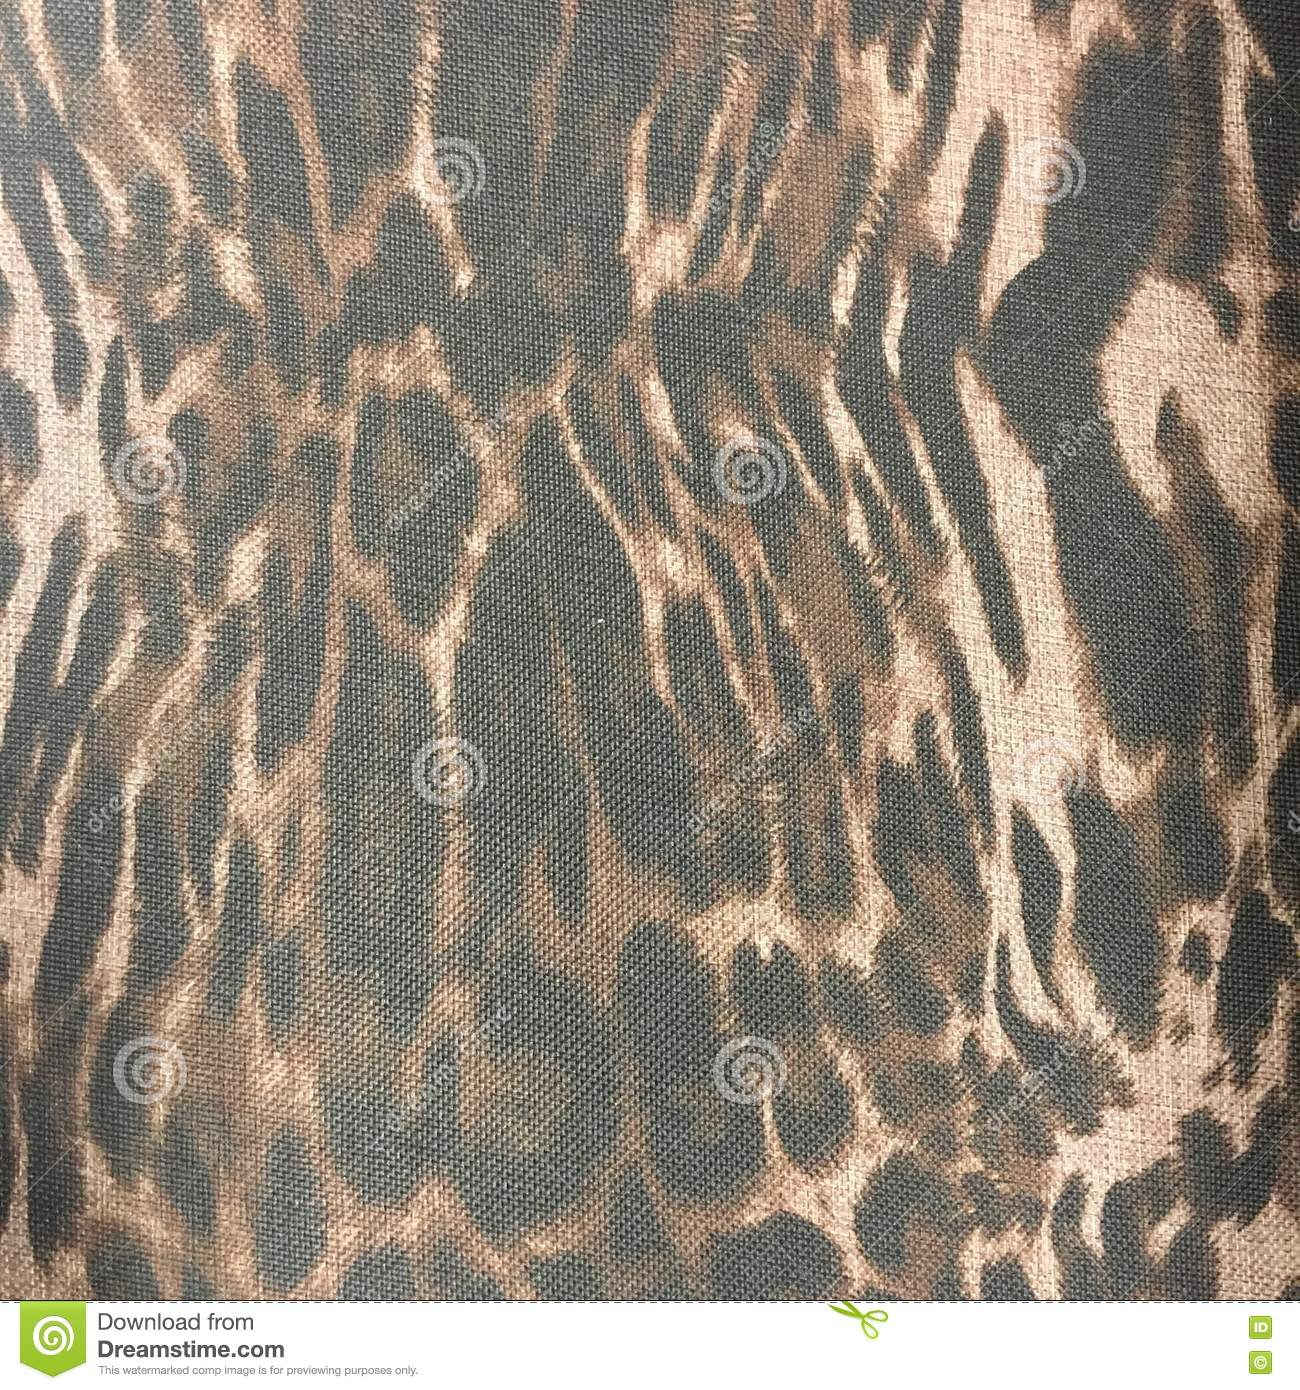 Leopard print material fabric pattern background